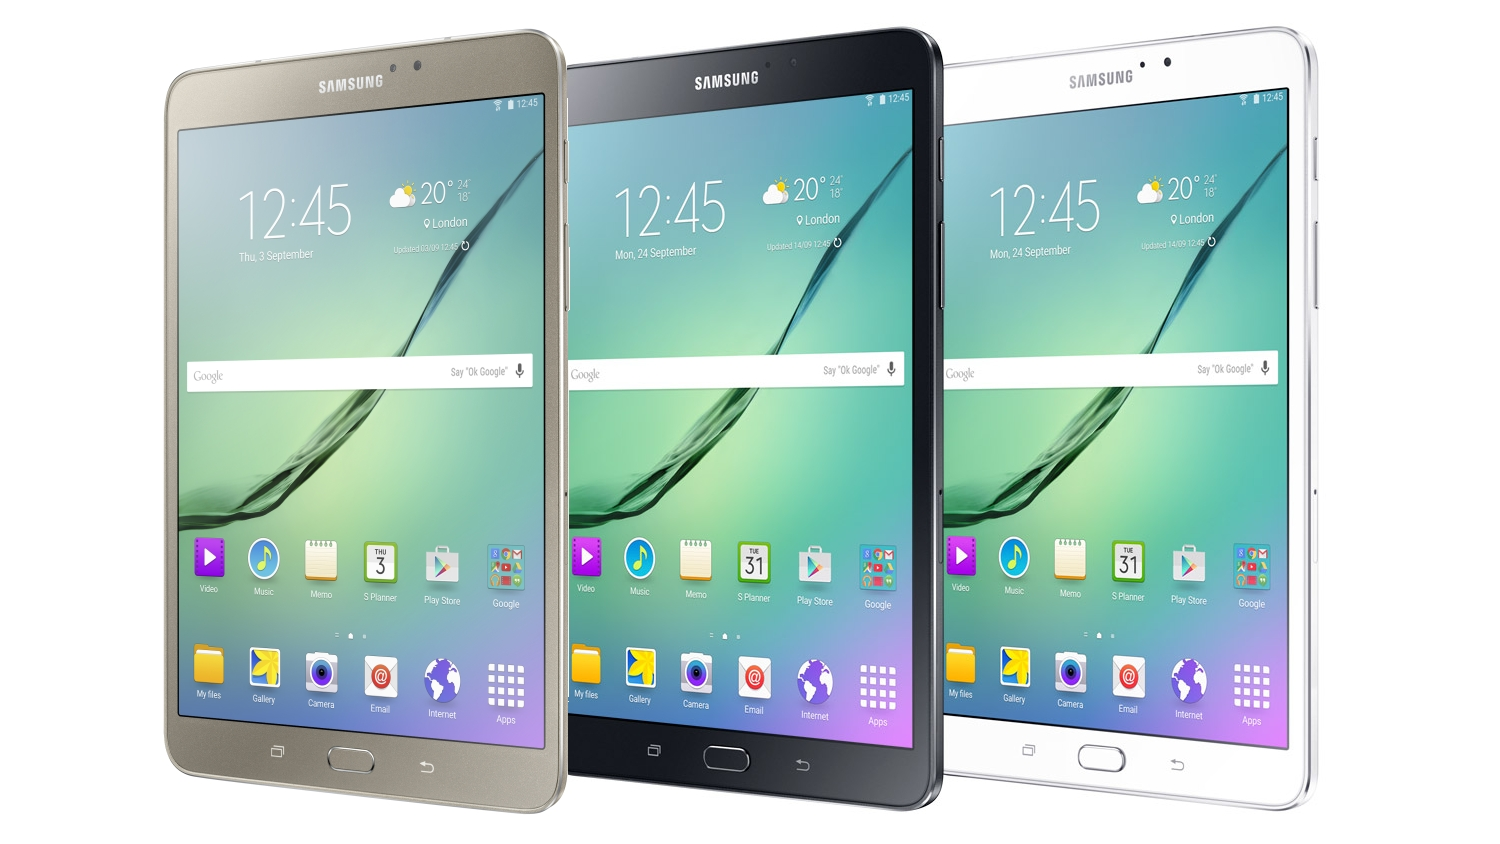 Samsung Galaxy Tab S2 8.0 is updated to Android 6.0.1 in England 1